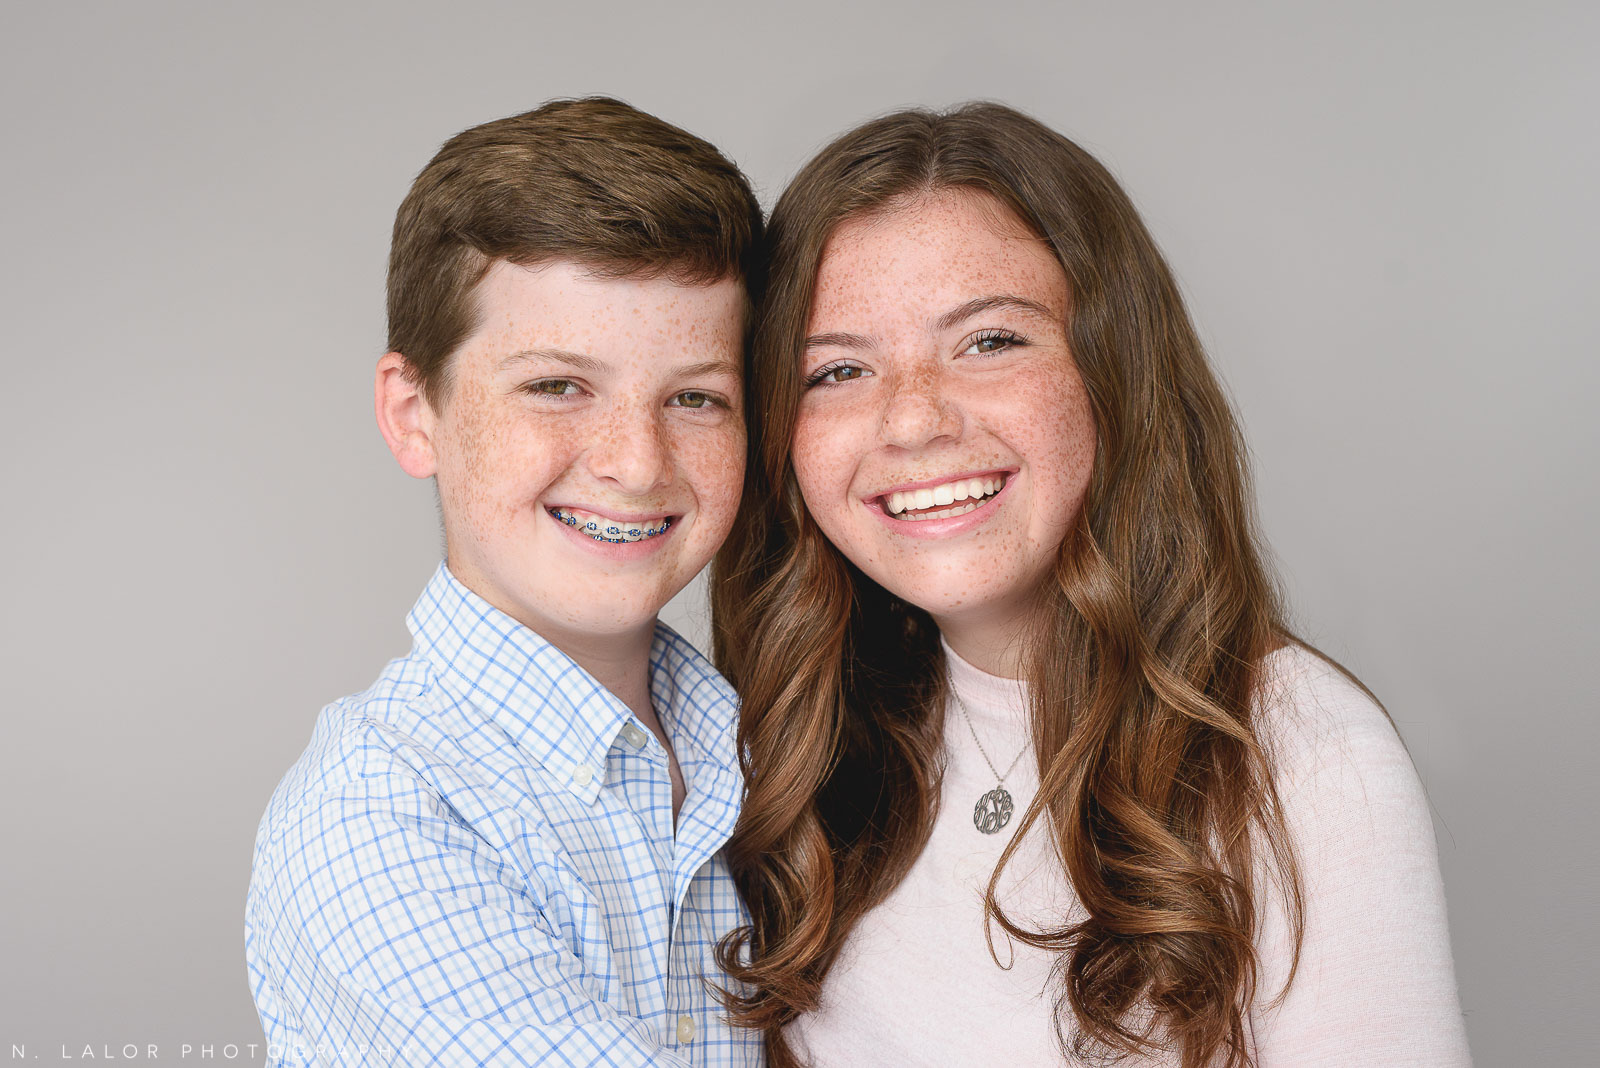 Image of a brother and sister, laughing.Studio portrait by N. Lalor Photography in Greenwich, Connecticut.